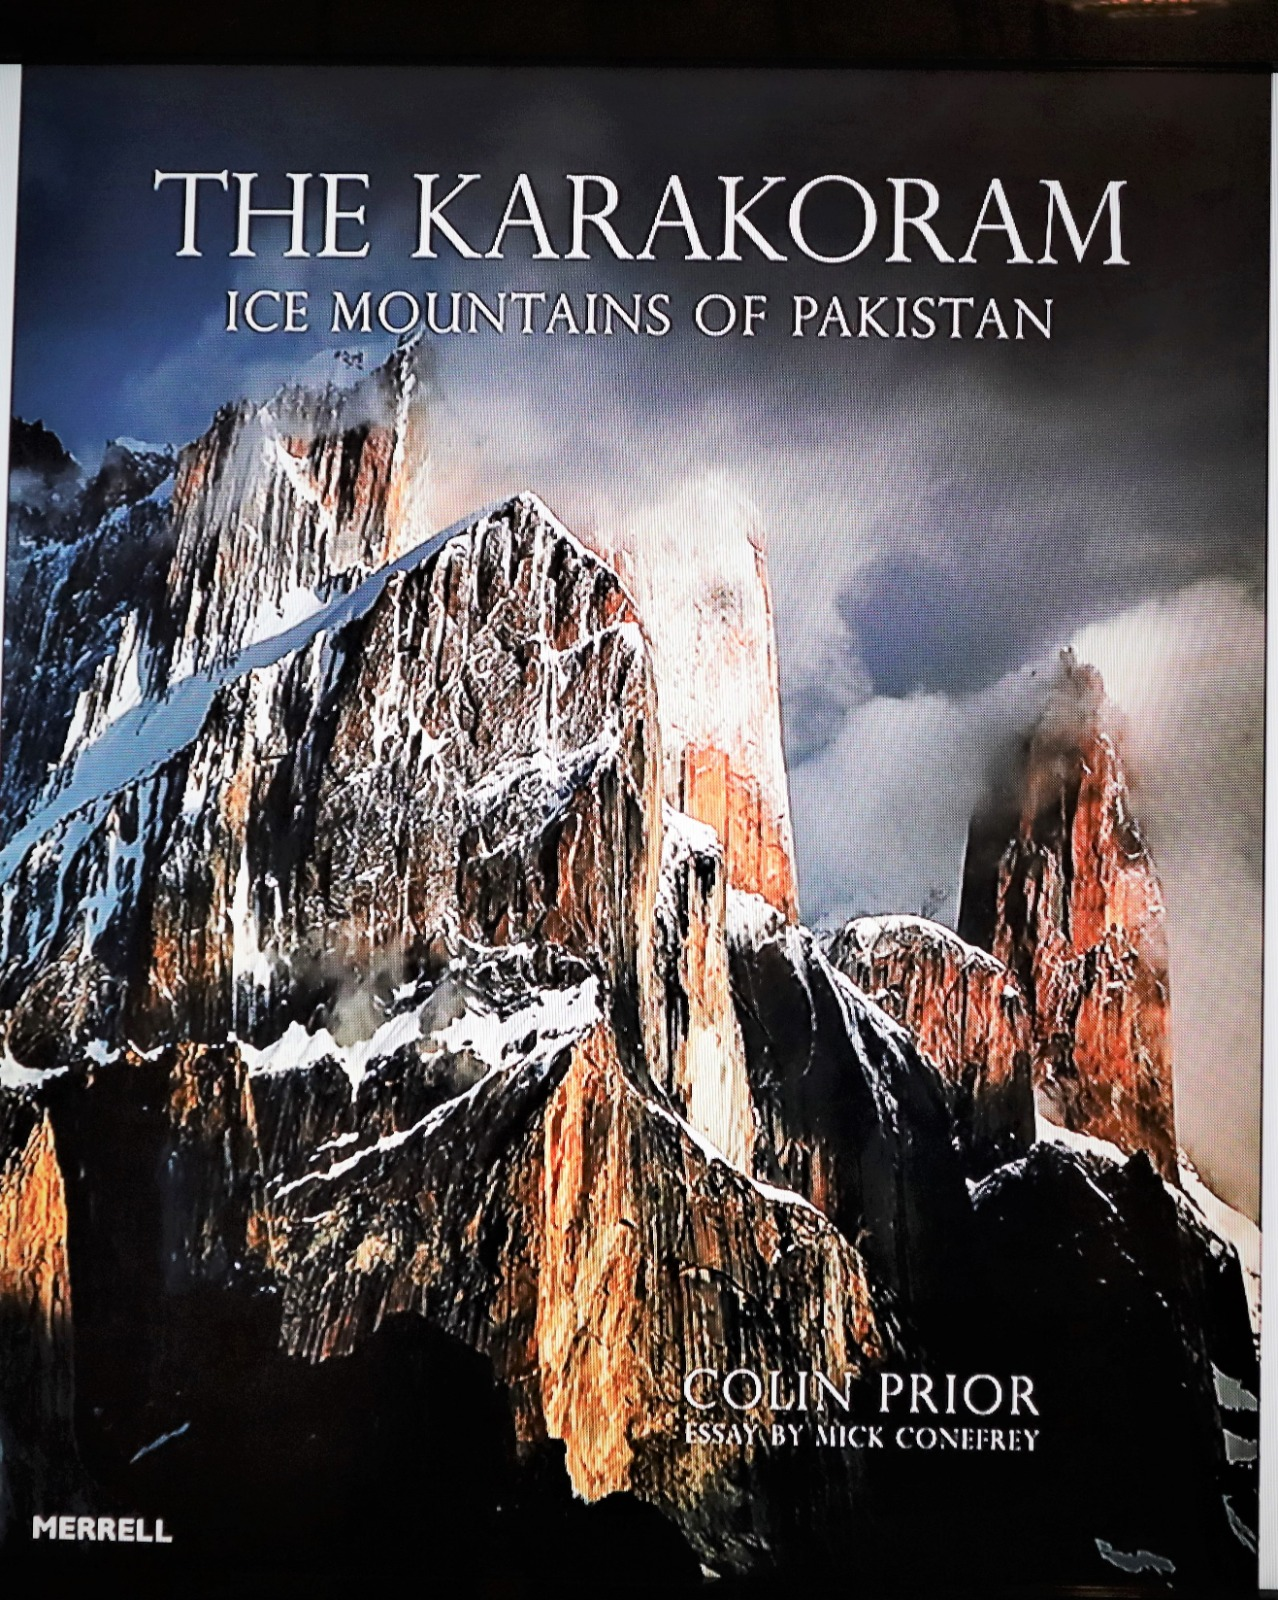 """Landscape photographer Colin Prior's book, """"The Karakoram: Ice Mountains of Pakistan"""" that was launched at Pakistan High Commission London"""